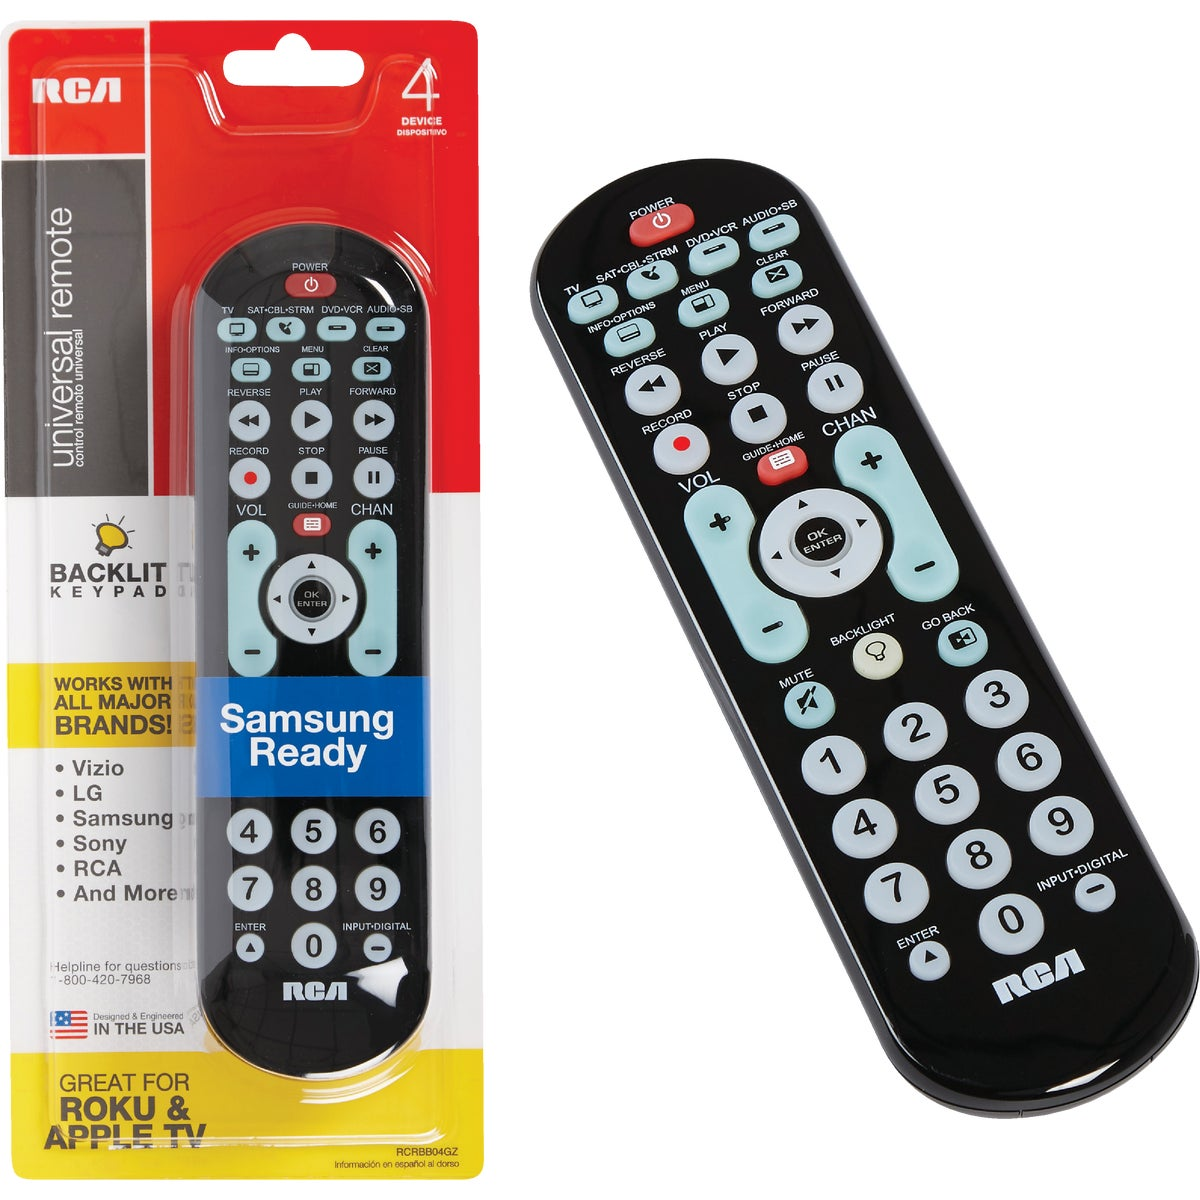 REMOTE CONTROL - RCR4258R by Audiovox Accessories